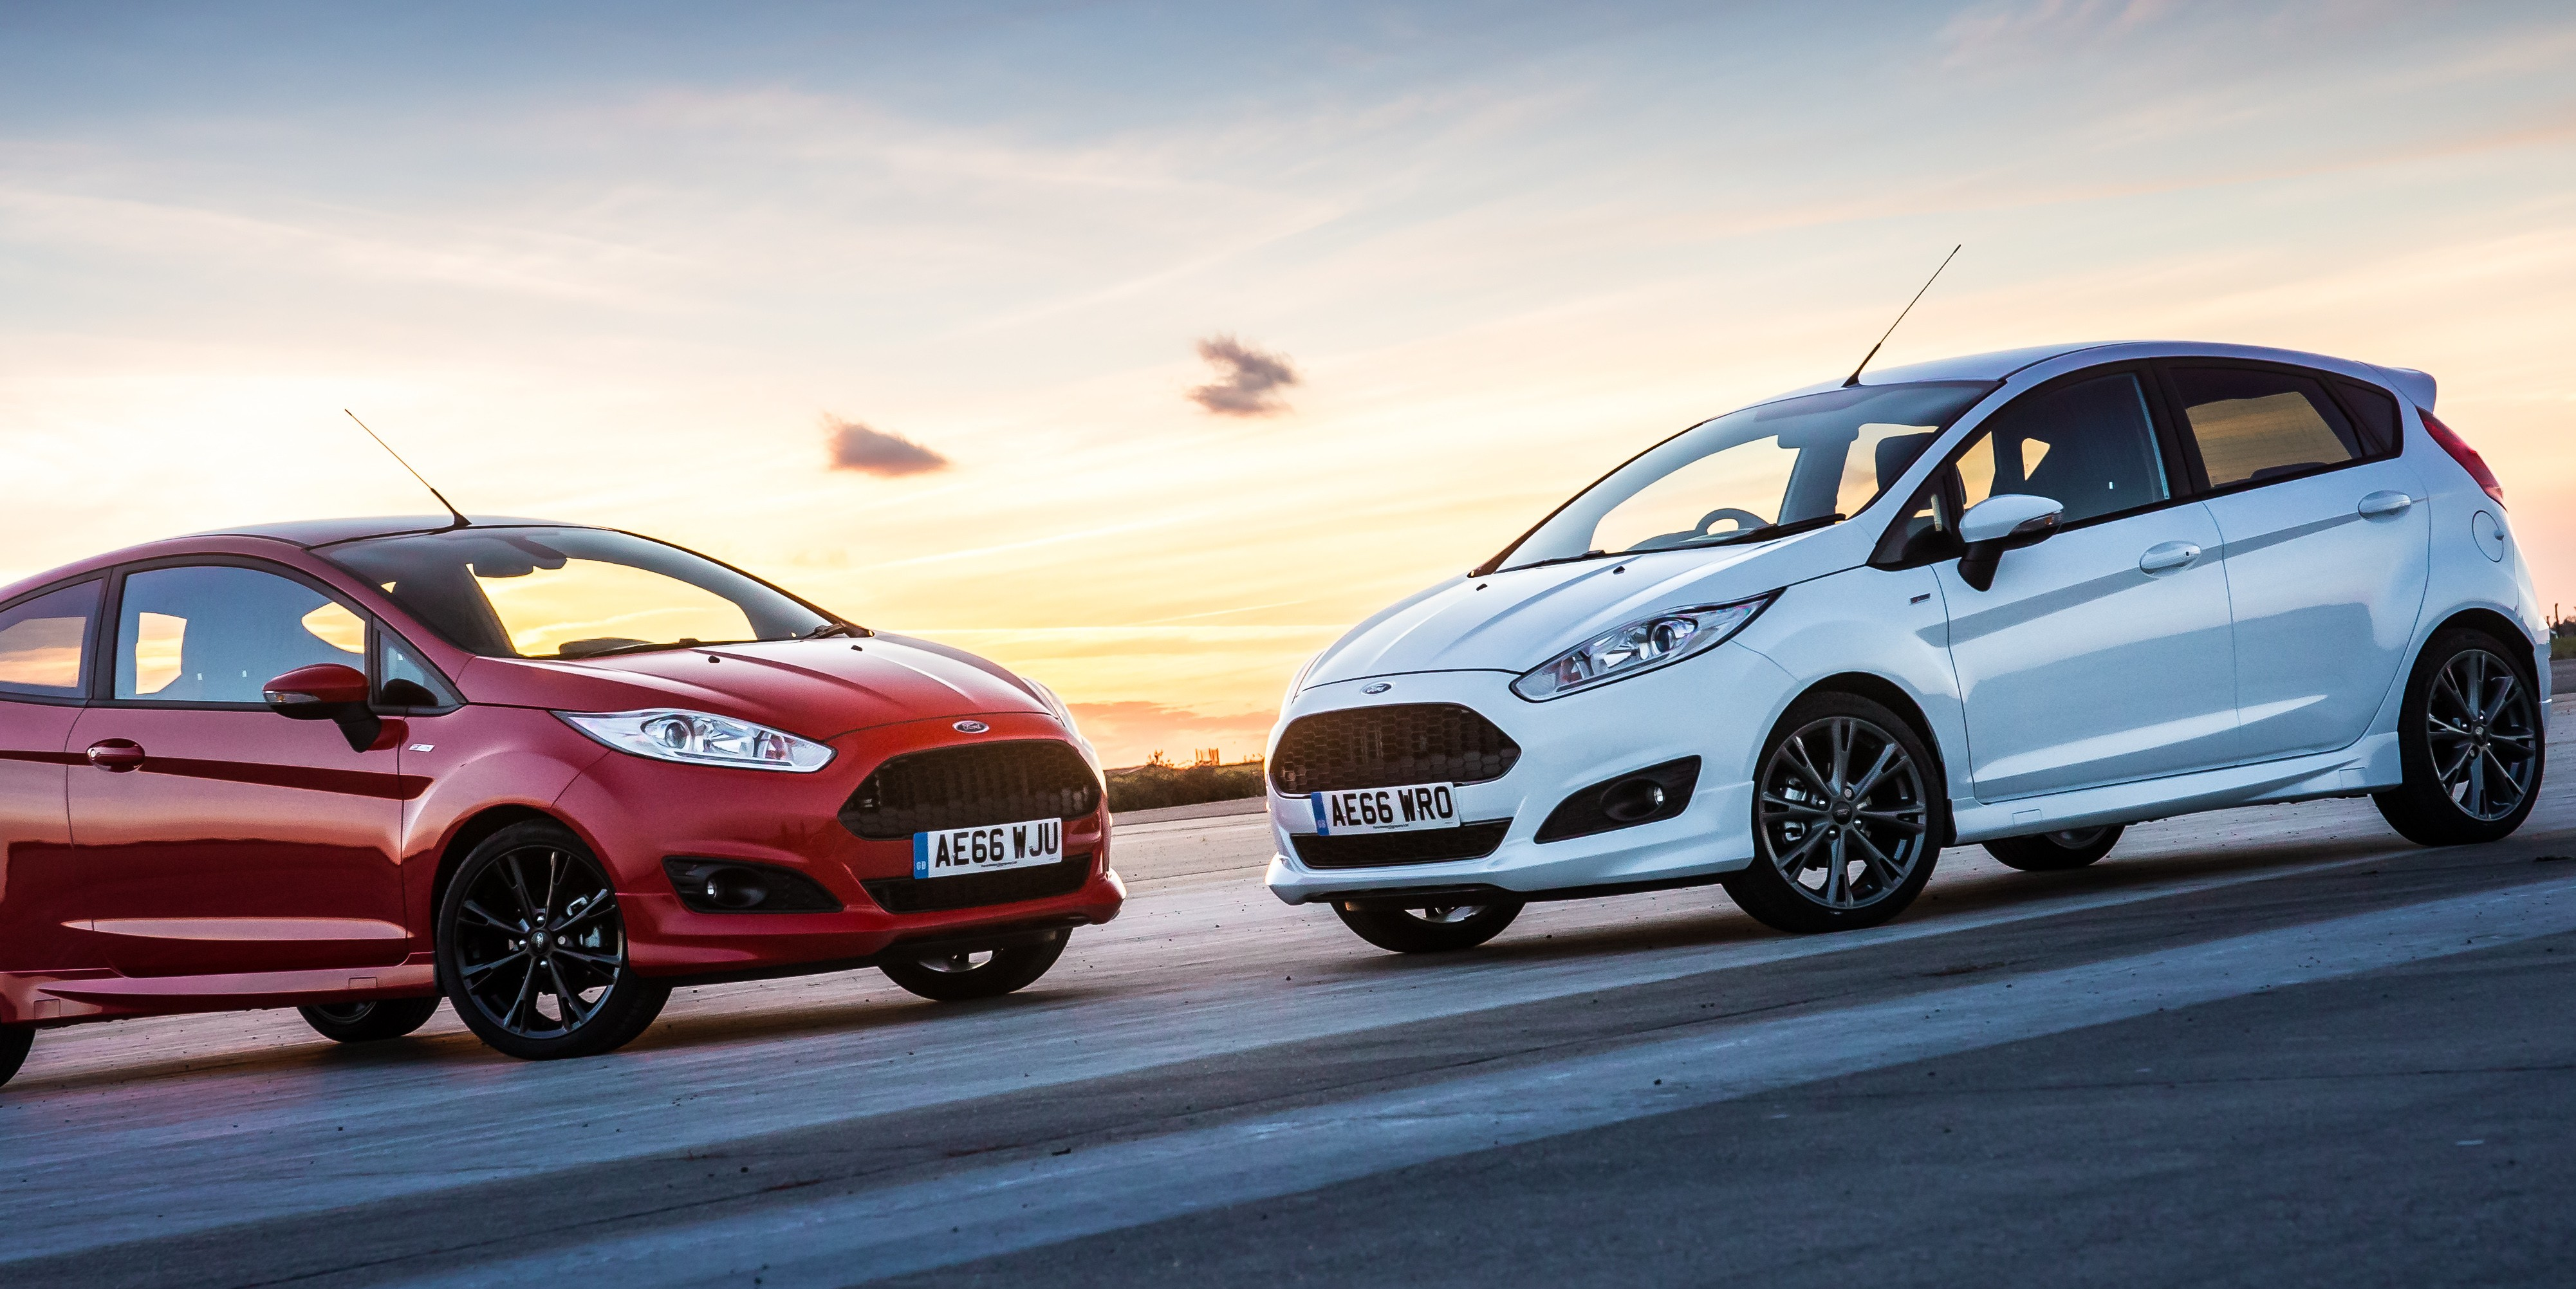 Red Ford Fiesta on left and white Ford Fiesta on right, nose to nose, with sunset in background